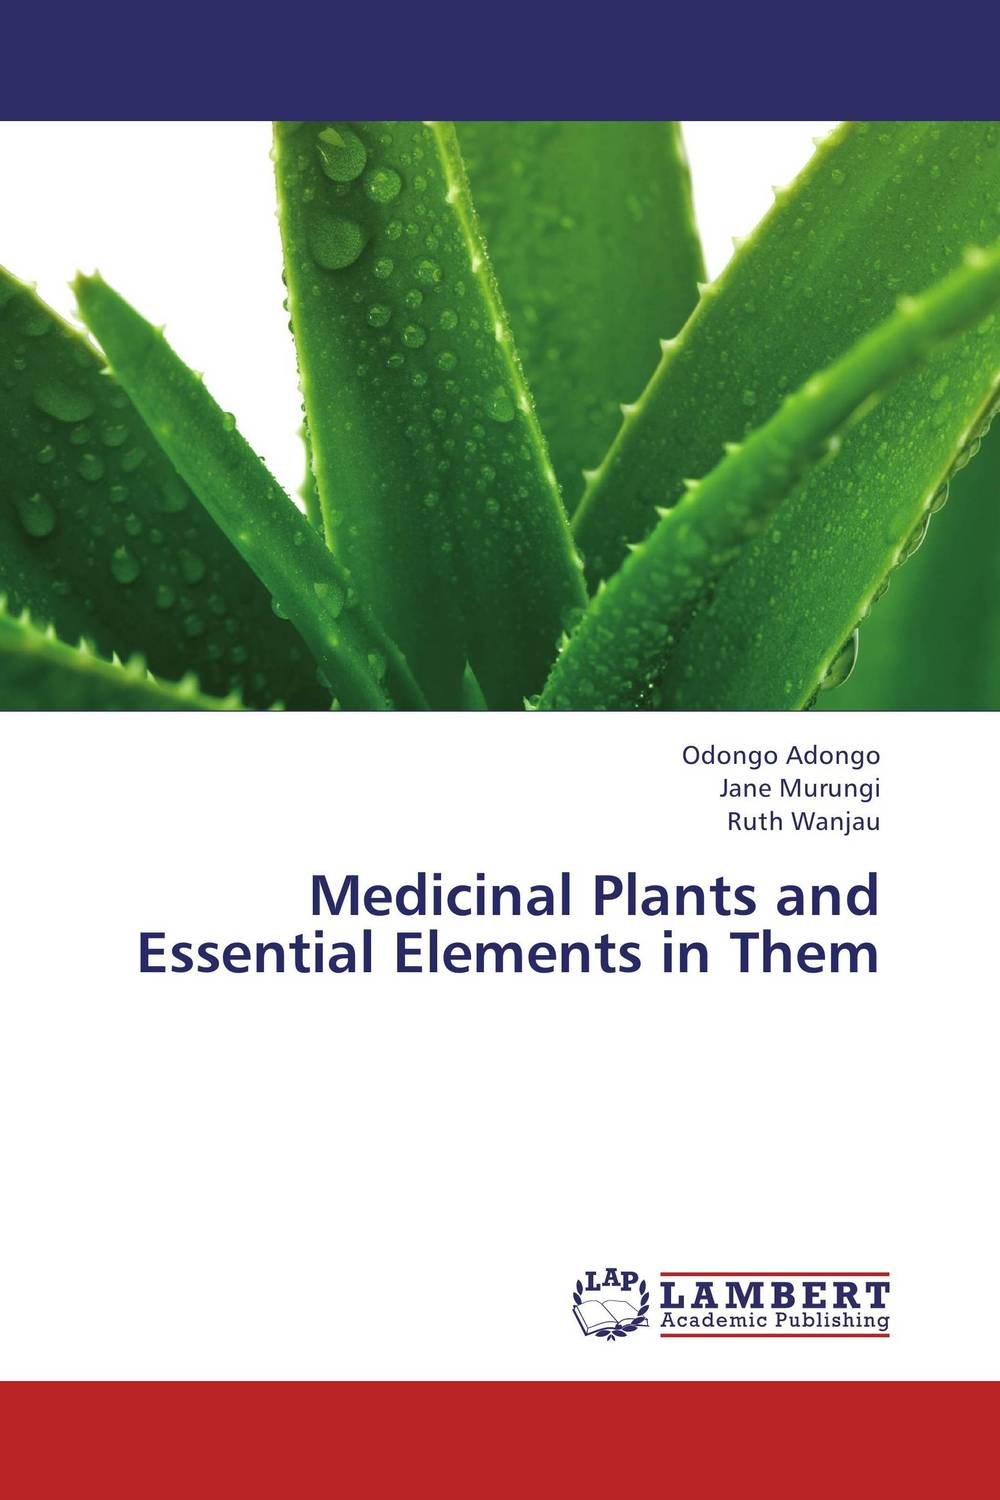 Medicinal Plants and Essential Elements in Them george varghese diana john and solomon habtemariam medicinal plants for kidney stone a monograph